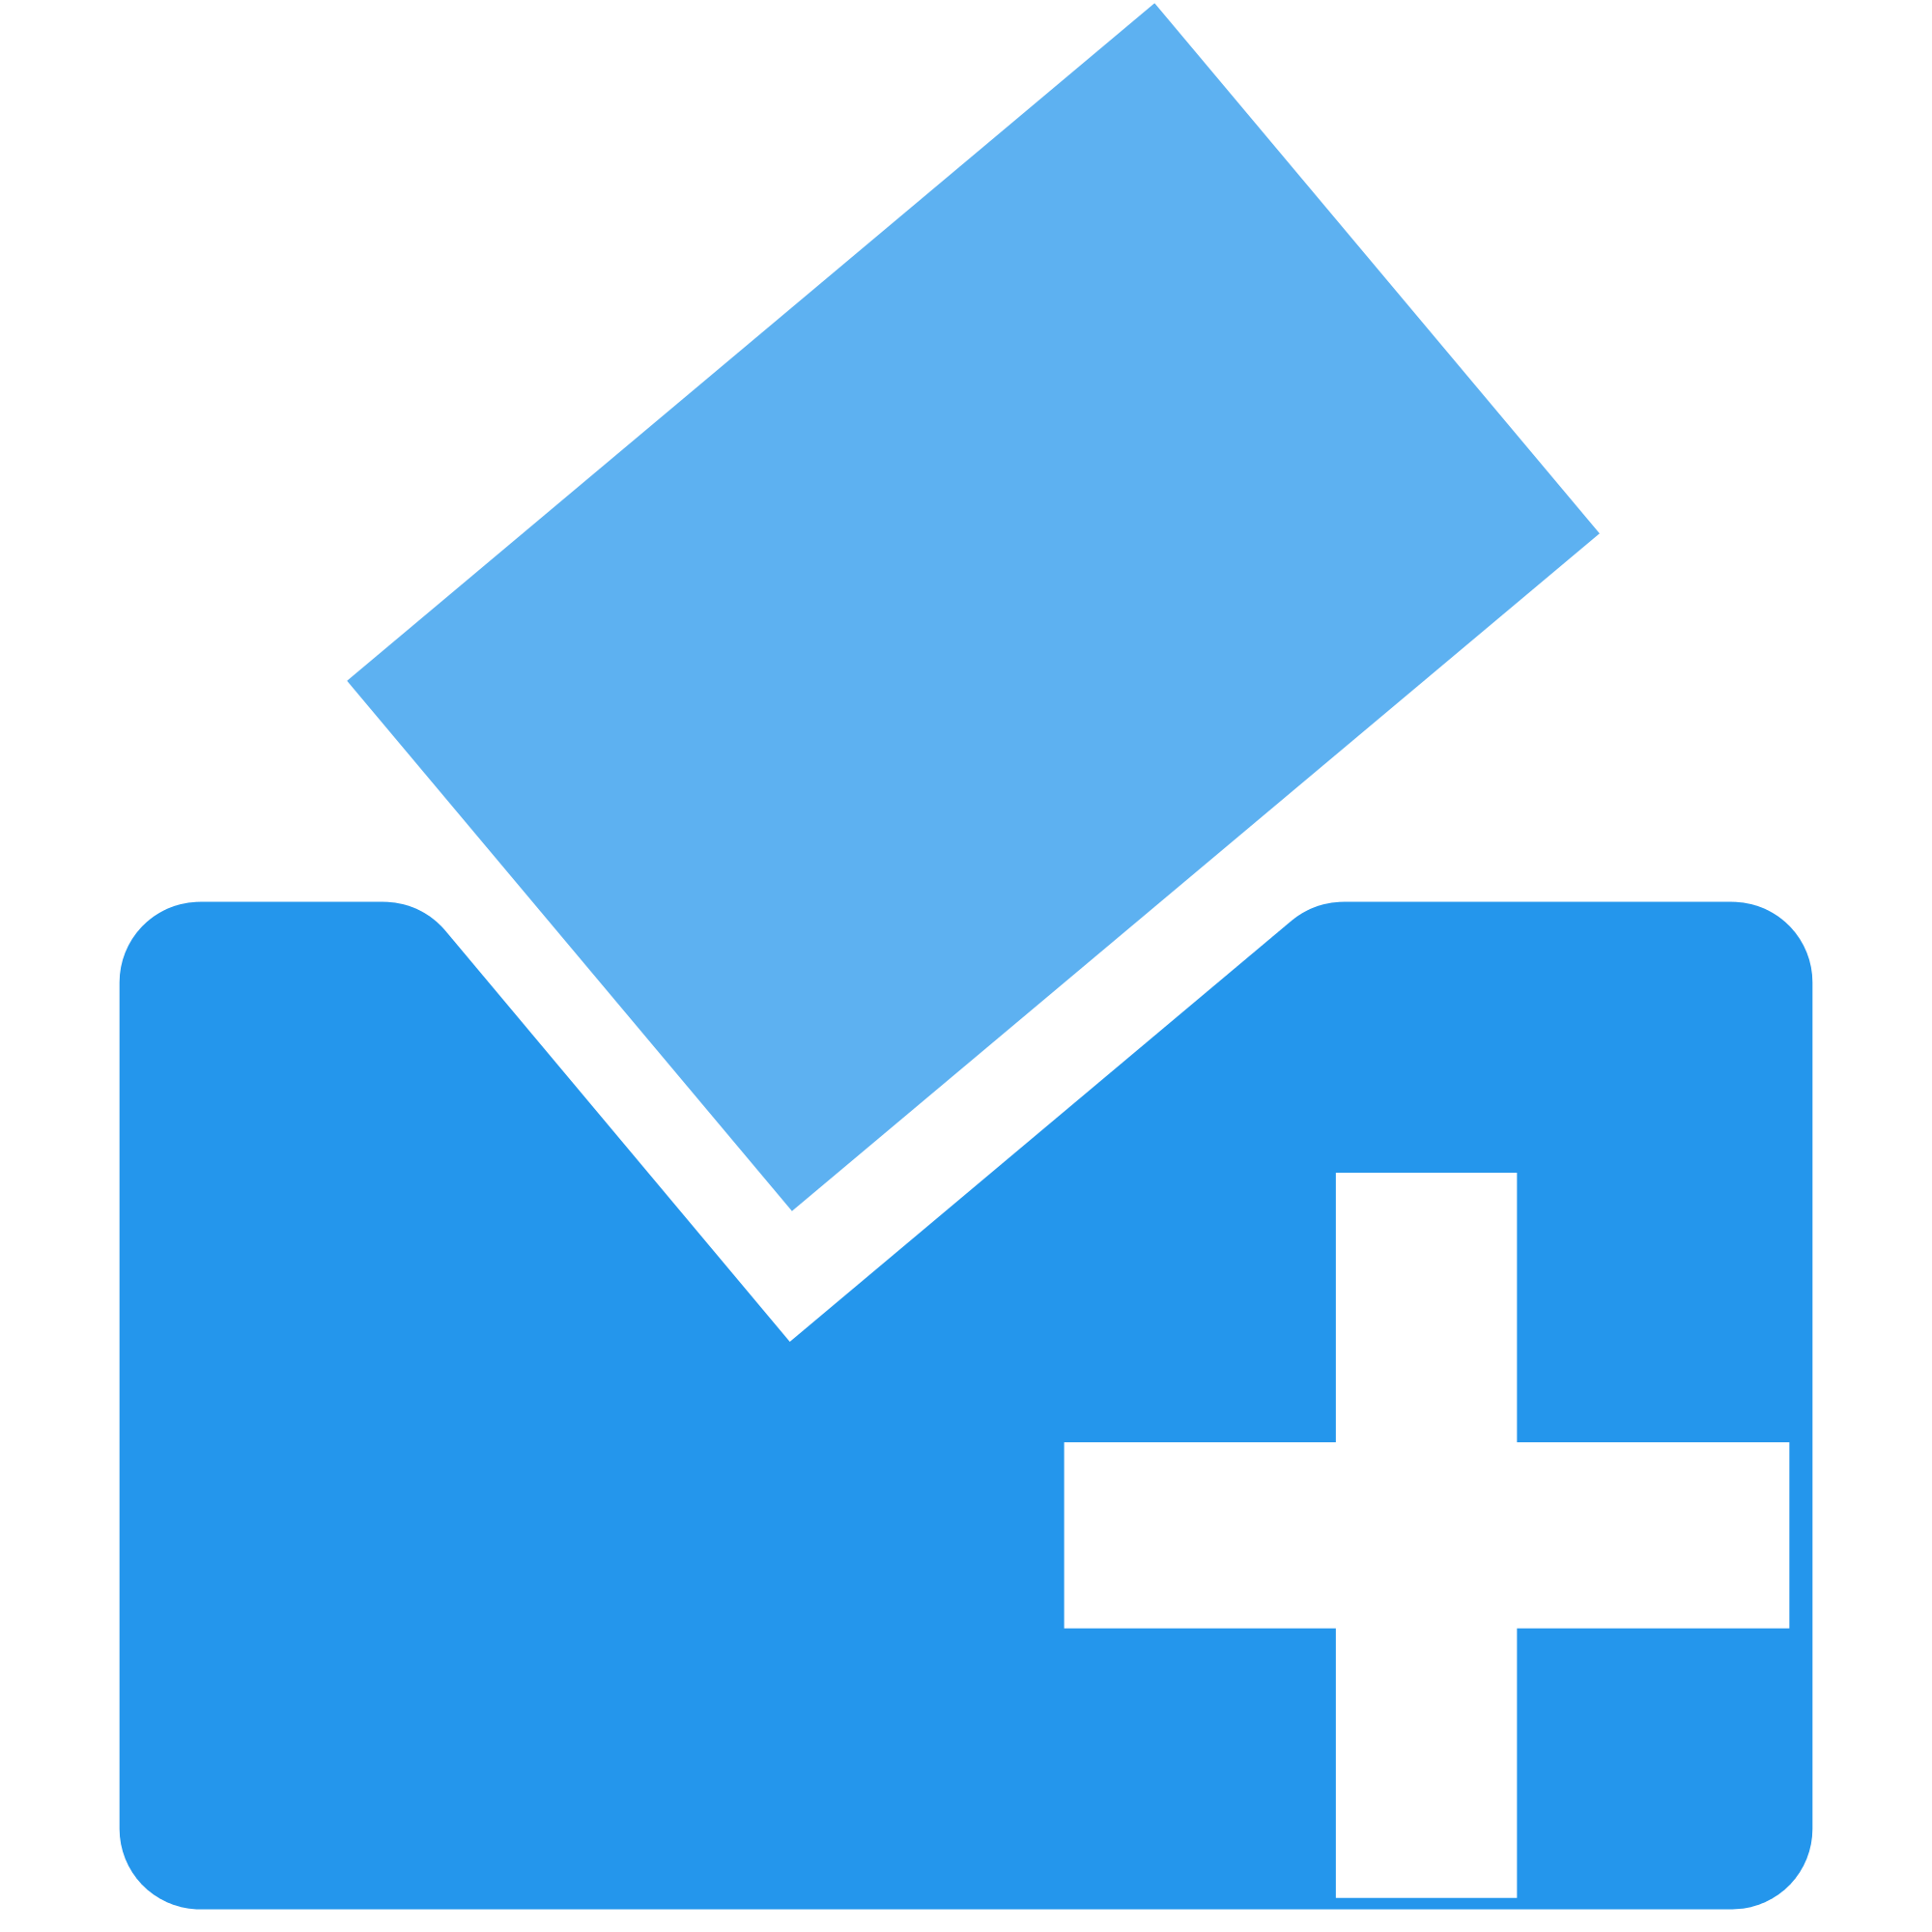 Svg hover. File icon vote wikimedia